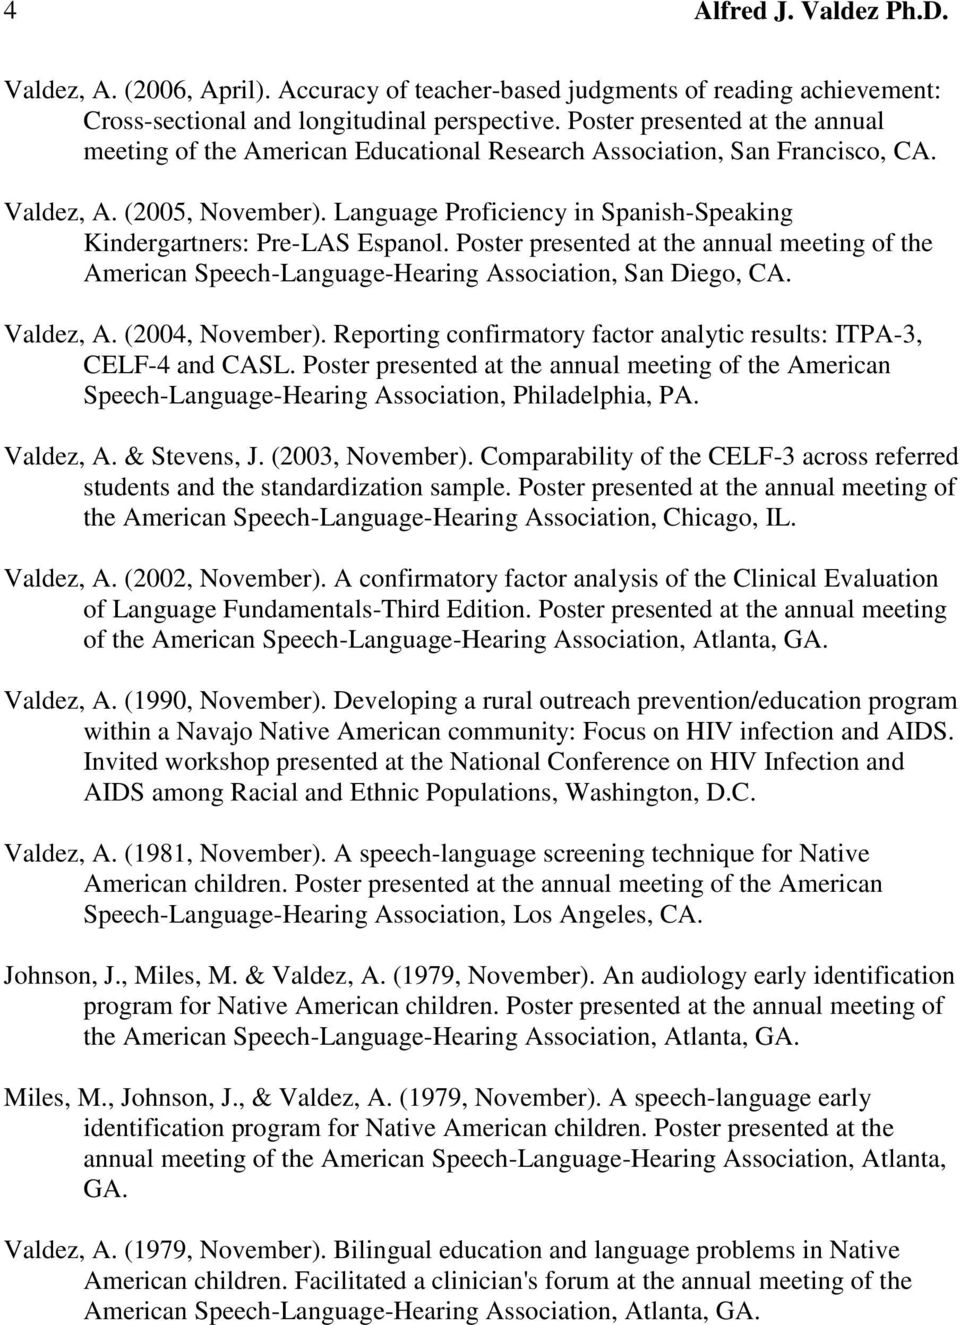 Language Proficiency in Spanish-Speaking Kindergartners: Pre-LAS Espanol. Poster presented at the annual meeting of the American Speech-Language-Hearing Association, San Diego, CA. Valdez, A.